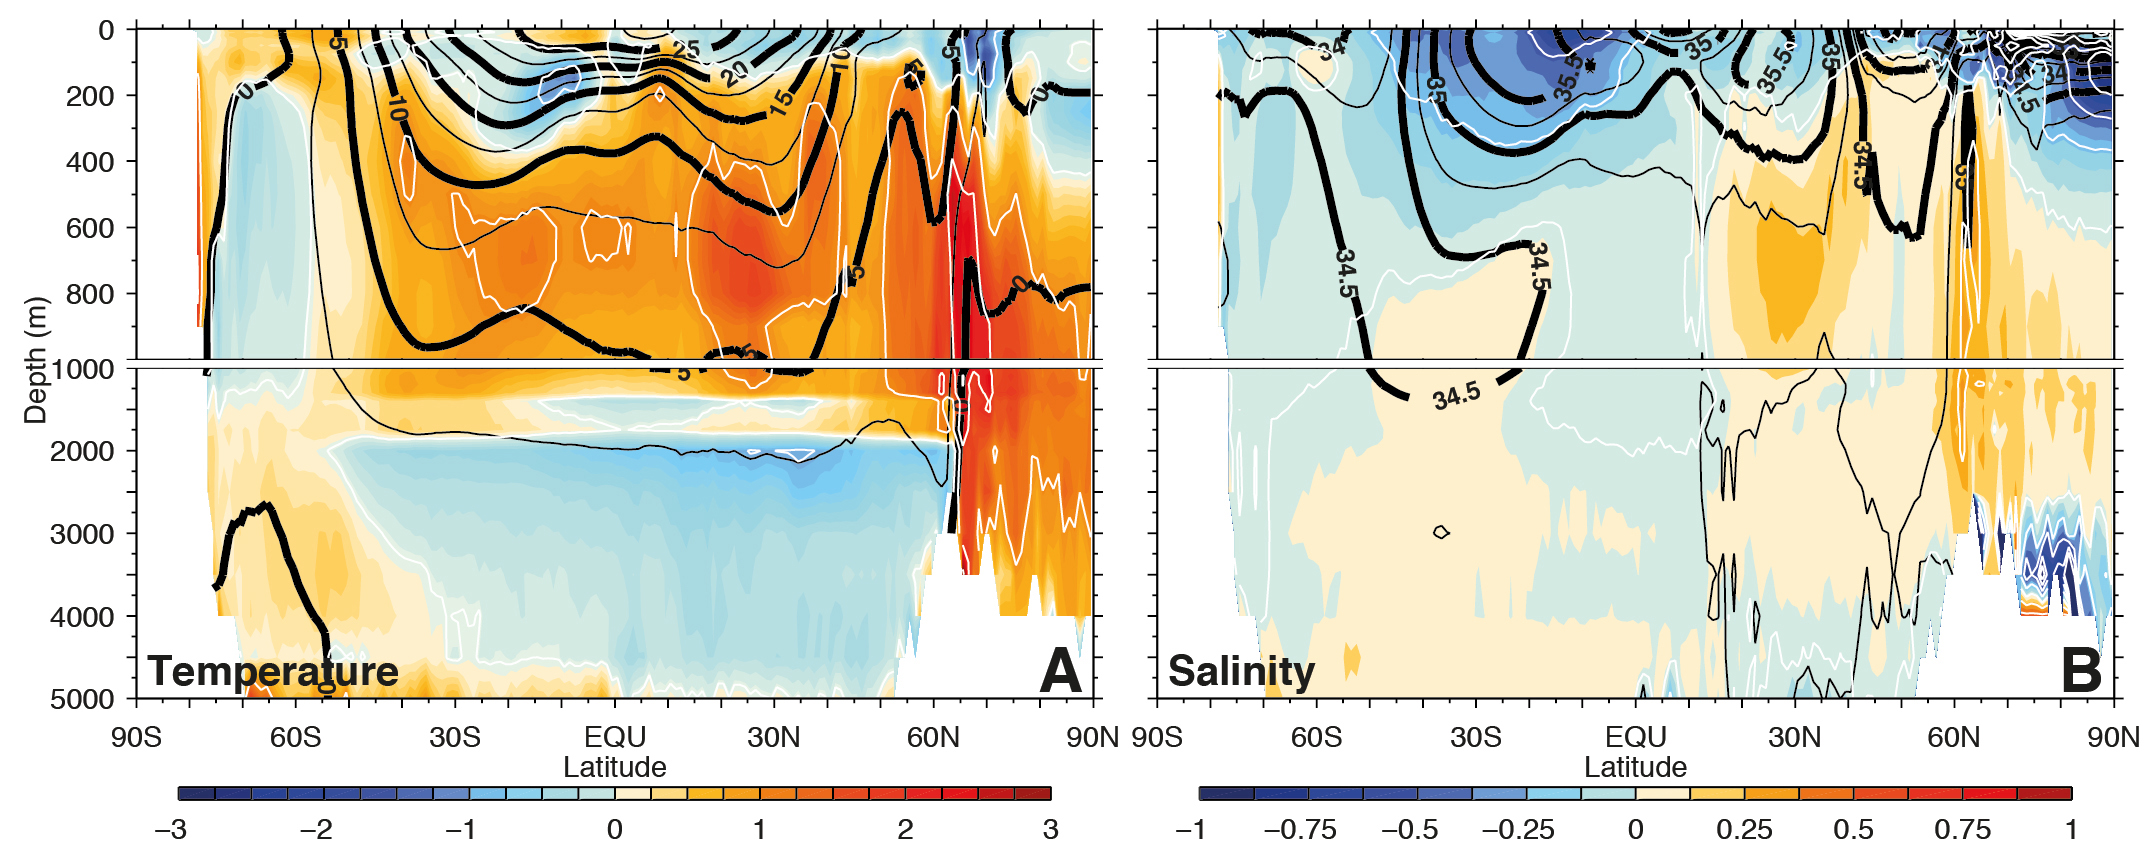 Zonally averaged differences in temperature (A) and salinity (B) between the multi model mean and observations (color contours and white lines). Black lines indicate observed temperature and salinity from the World Ocean Atlas 2009. From ipcc.ch.